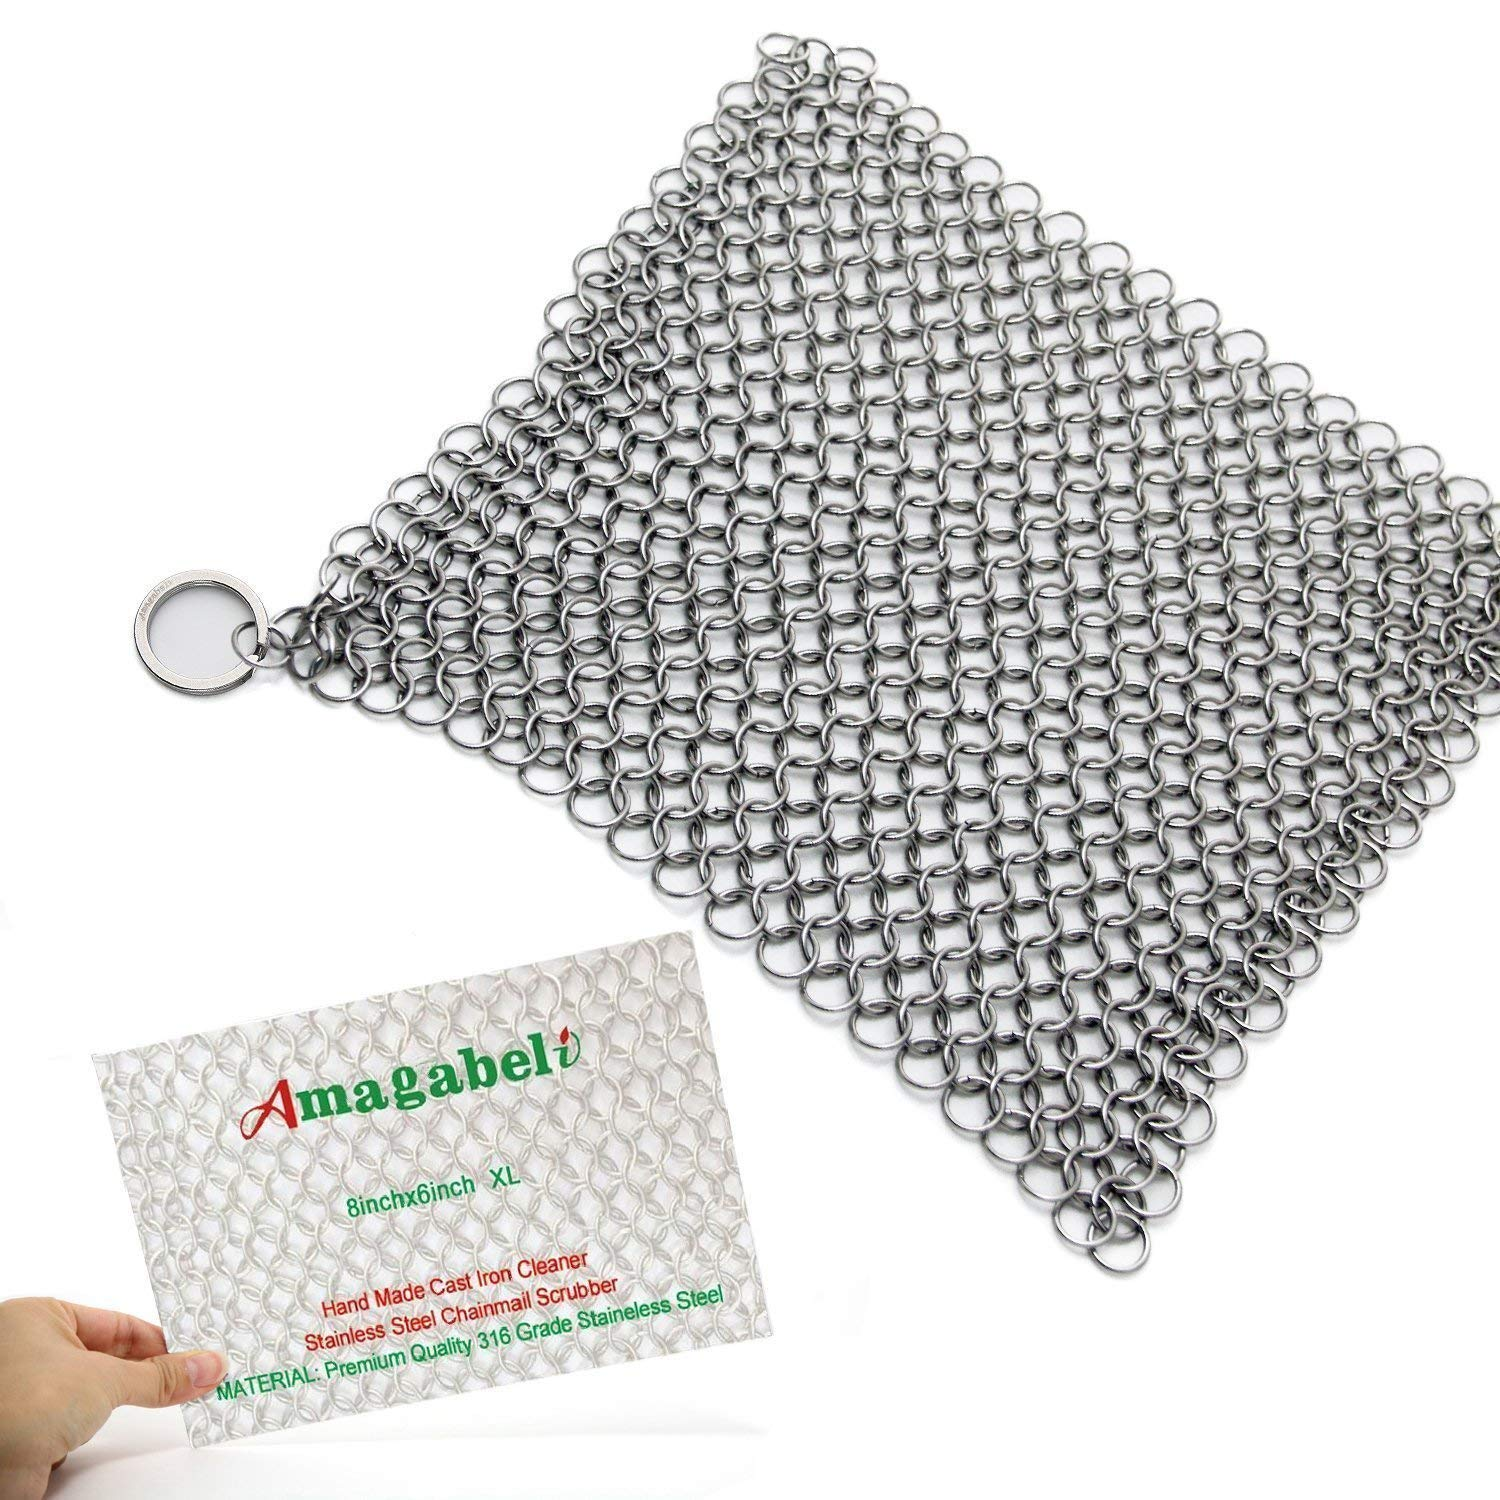 "Amagabeli 8""x6"" Stainless Steel Cast Iron Cleaner 316 Chainmail Scrubber for Cast Iron Pan Pre-Seasoned Pan Dutch Ovens Waffle Iron Pans Scraper Cast Iron Grill Scraper Skillet Scraper"